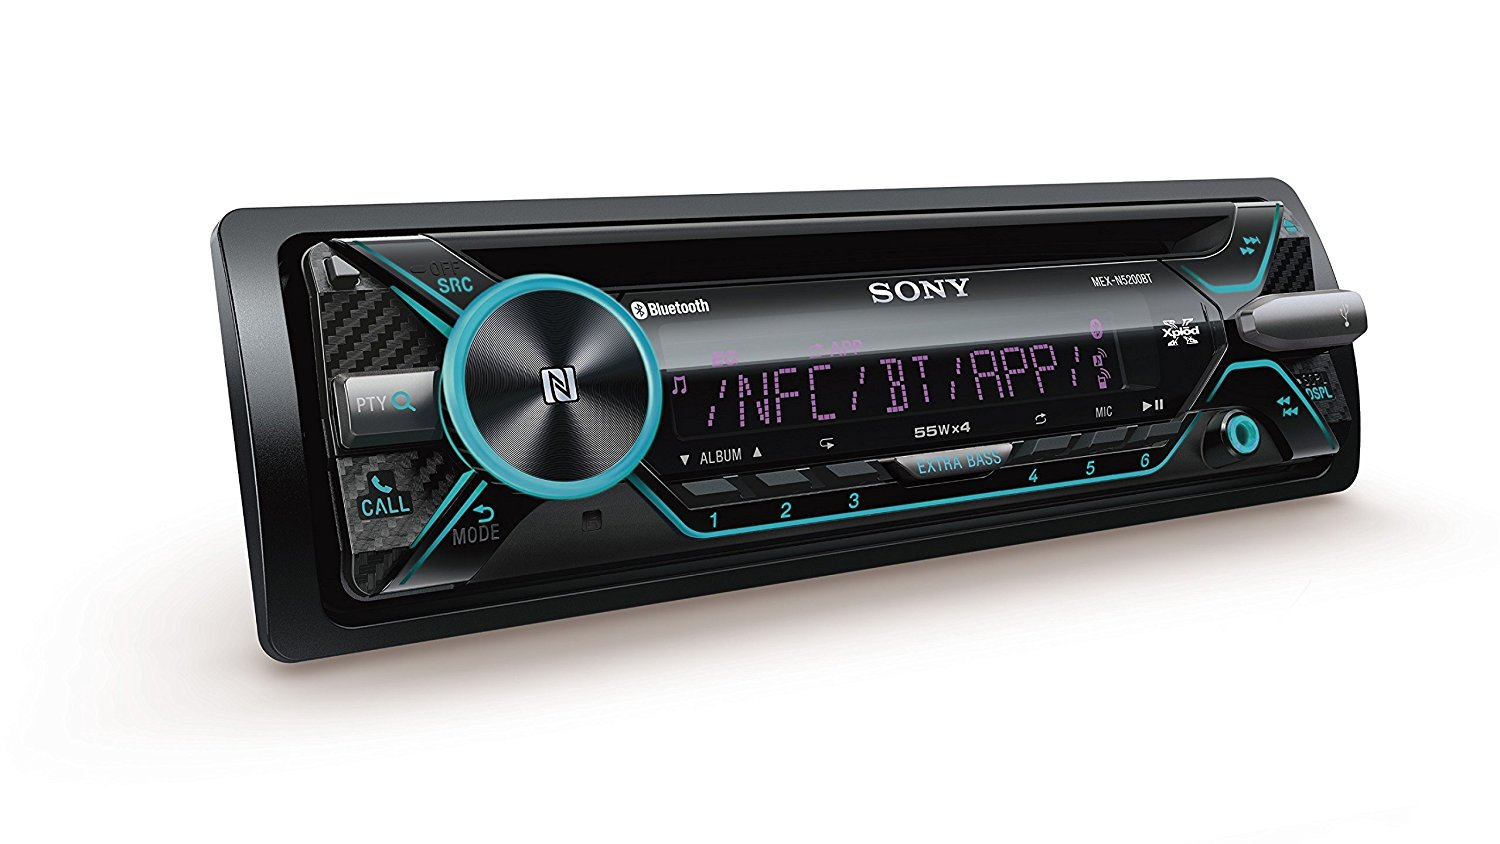 Aux Radio Cd Mp3 Wma Ipod Iphone Color Illuminatin Sony